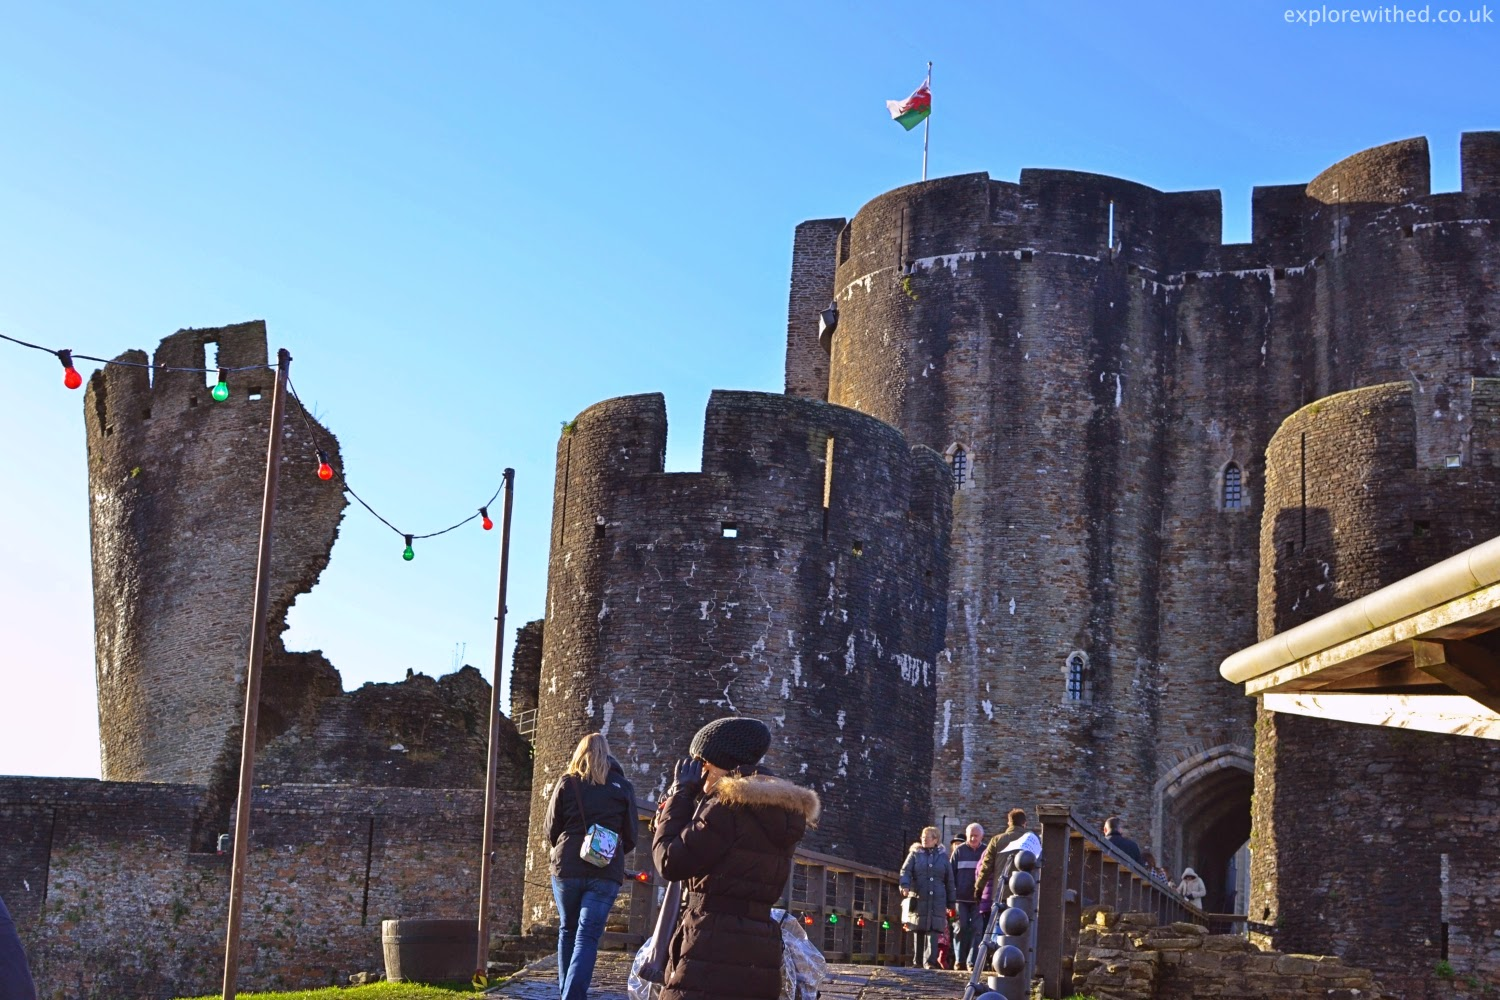 Caerphilly Castle with Christmas Lights